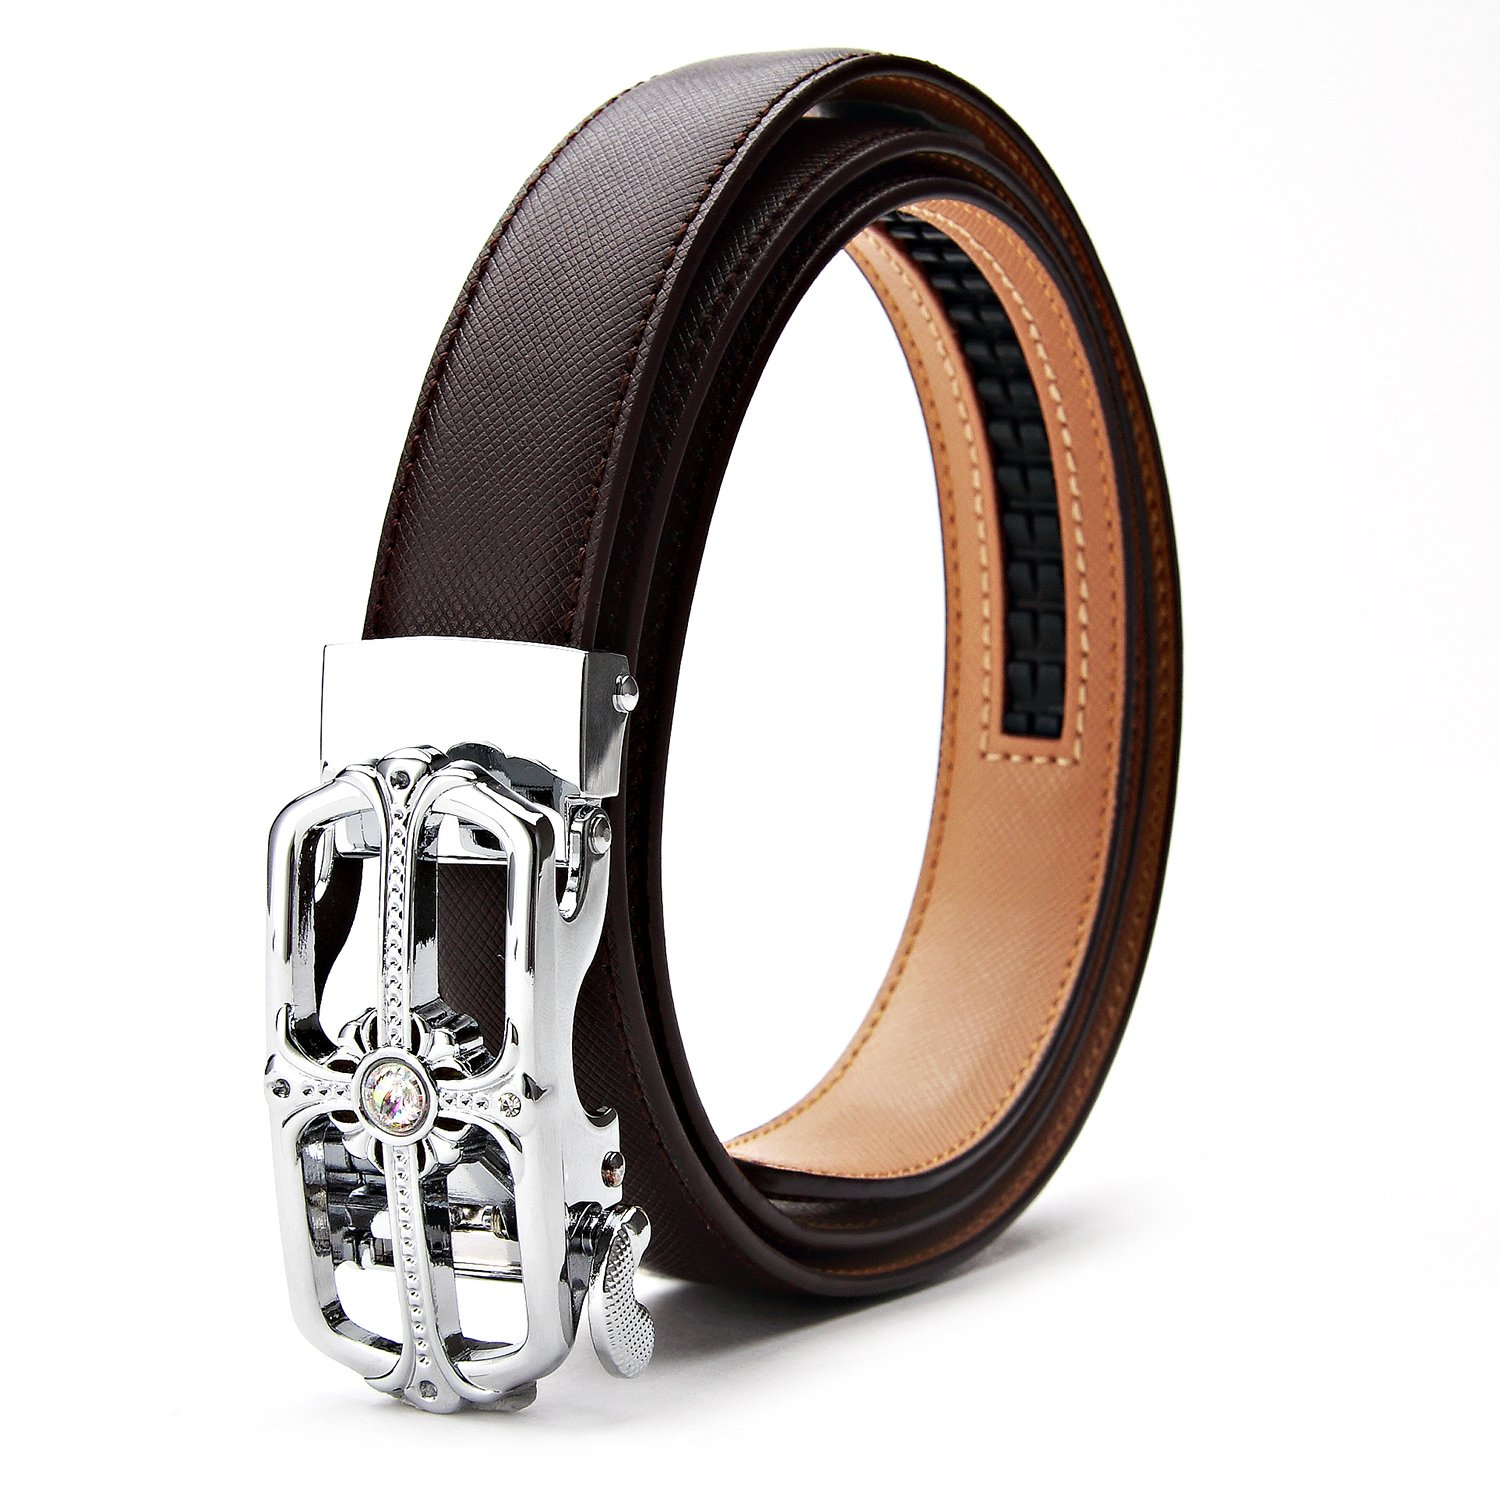 XIANGUO Women's Belt Genuine Leather Dress Belts with Automatic Buckle (Dark Brown)